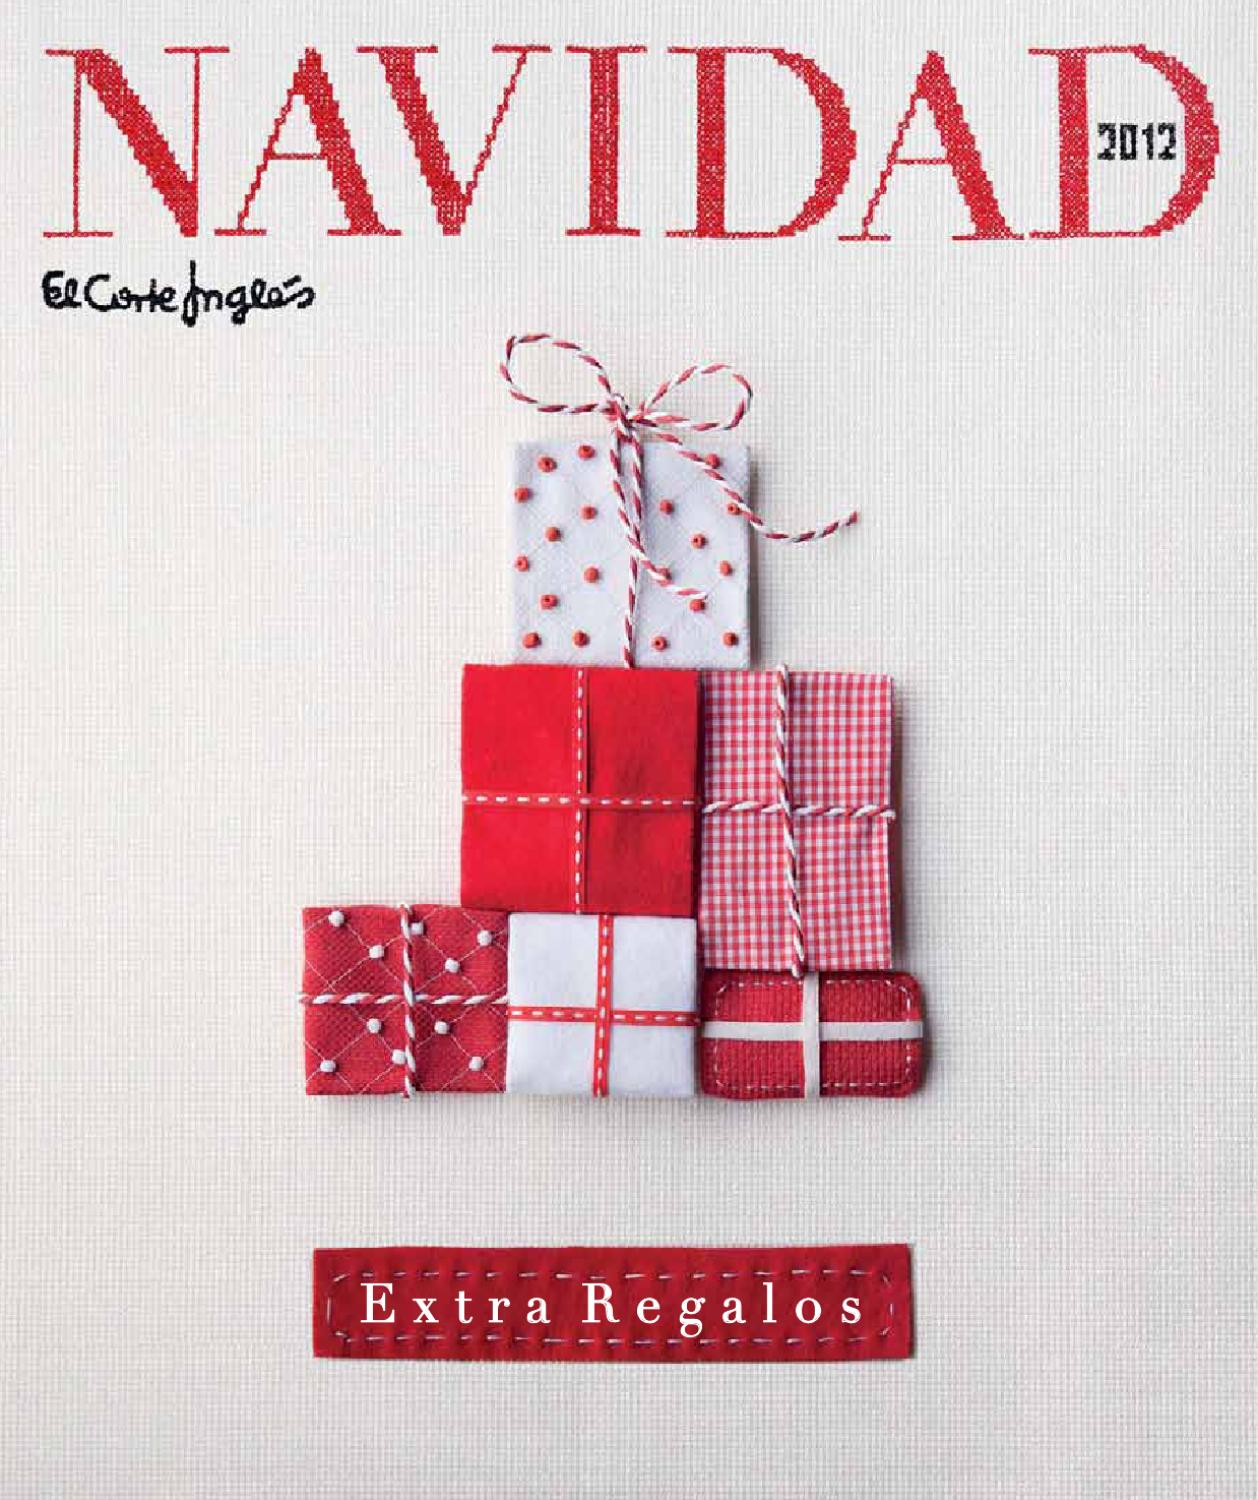 Extra Regalos 2012 Corte Ingles By Jhonny San Issuu